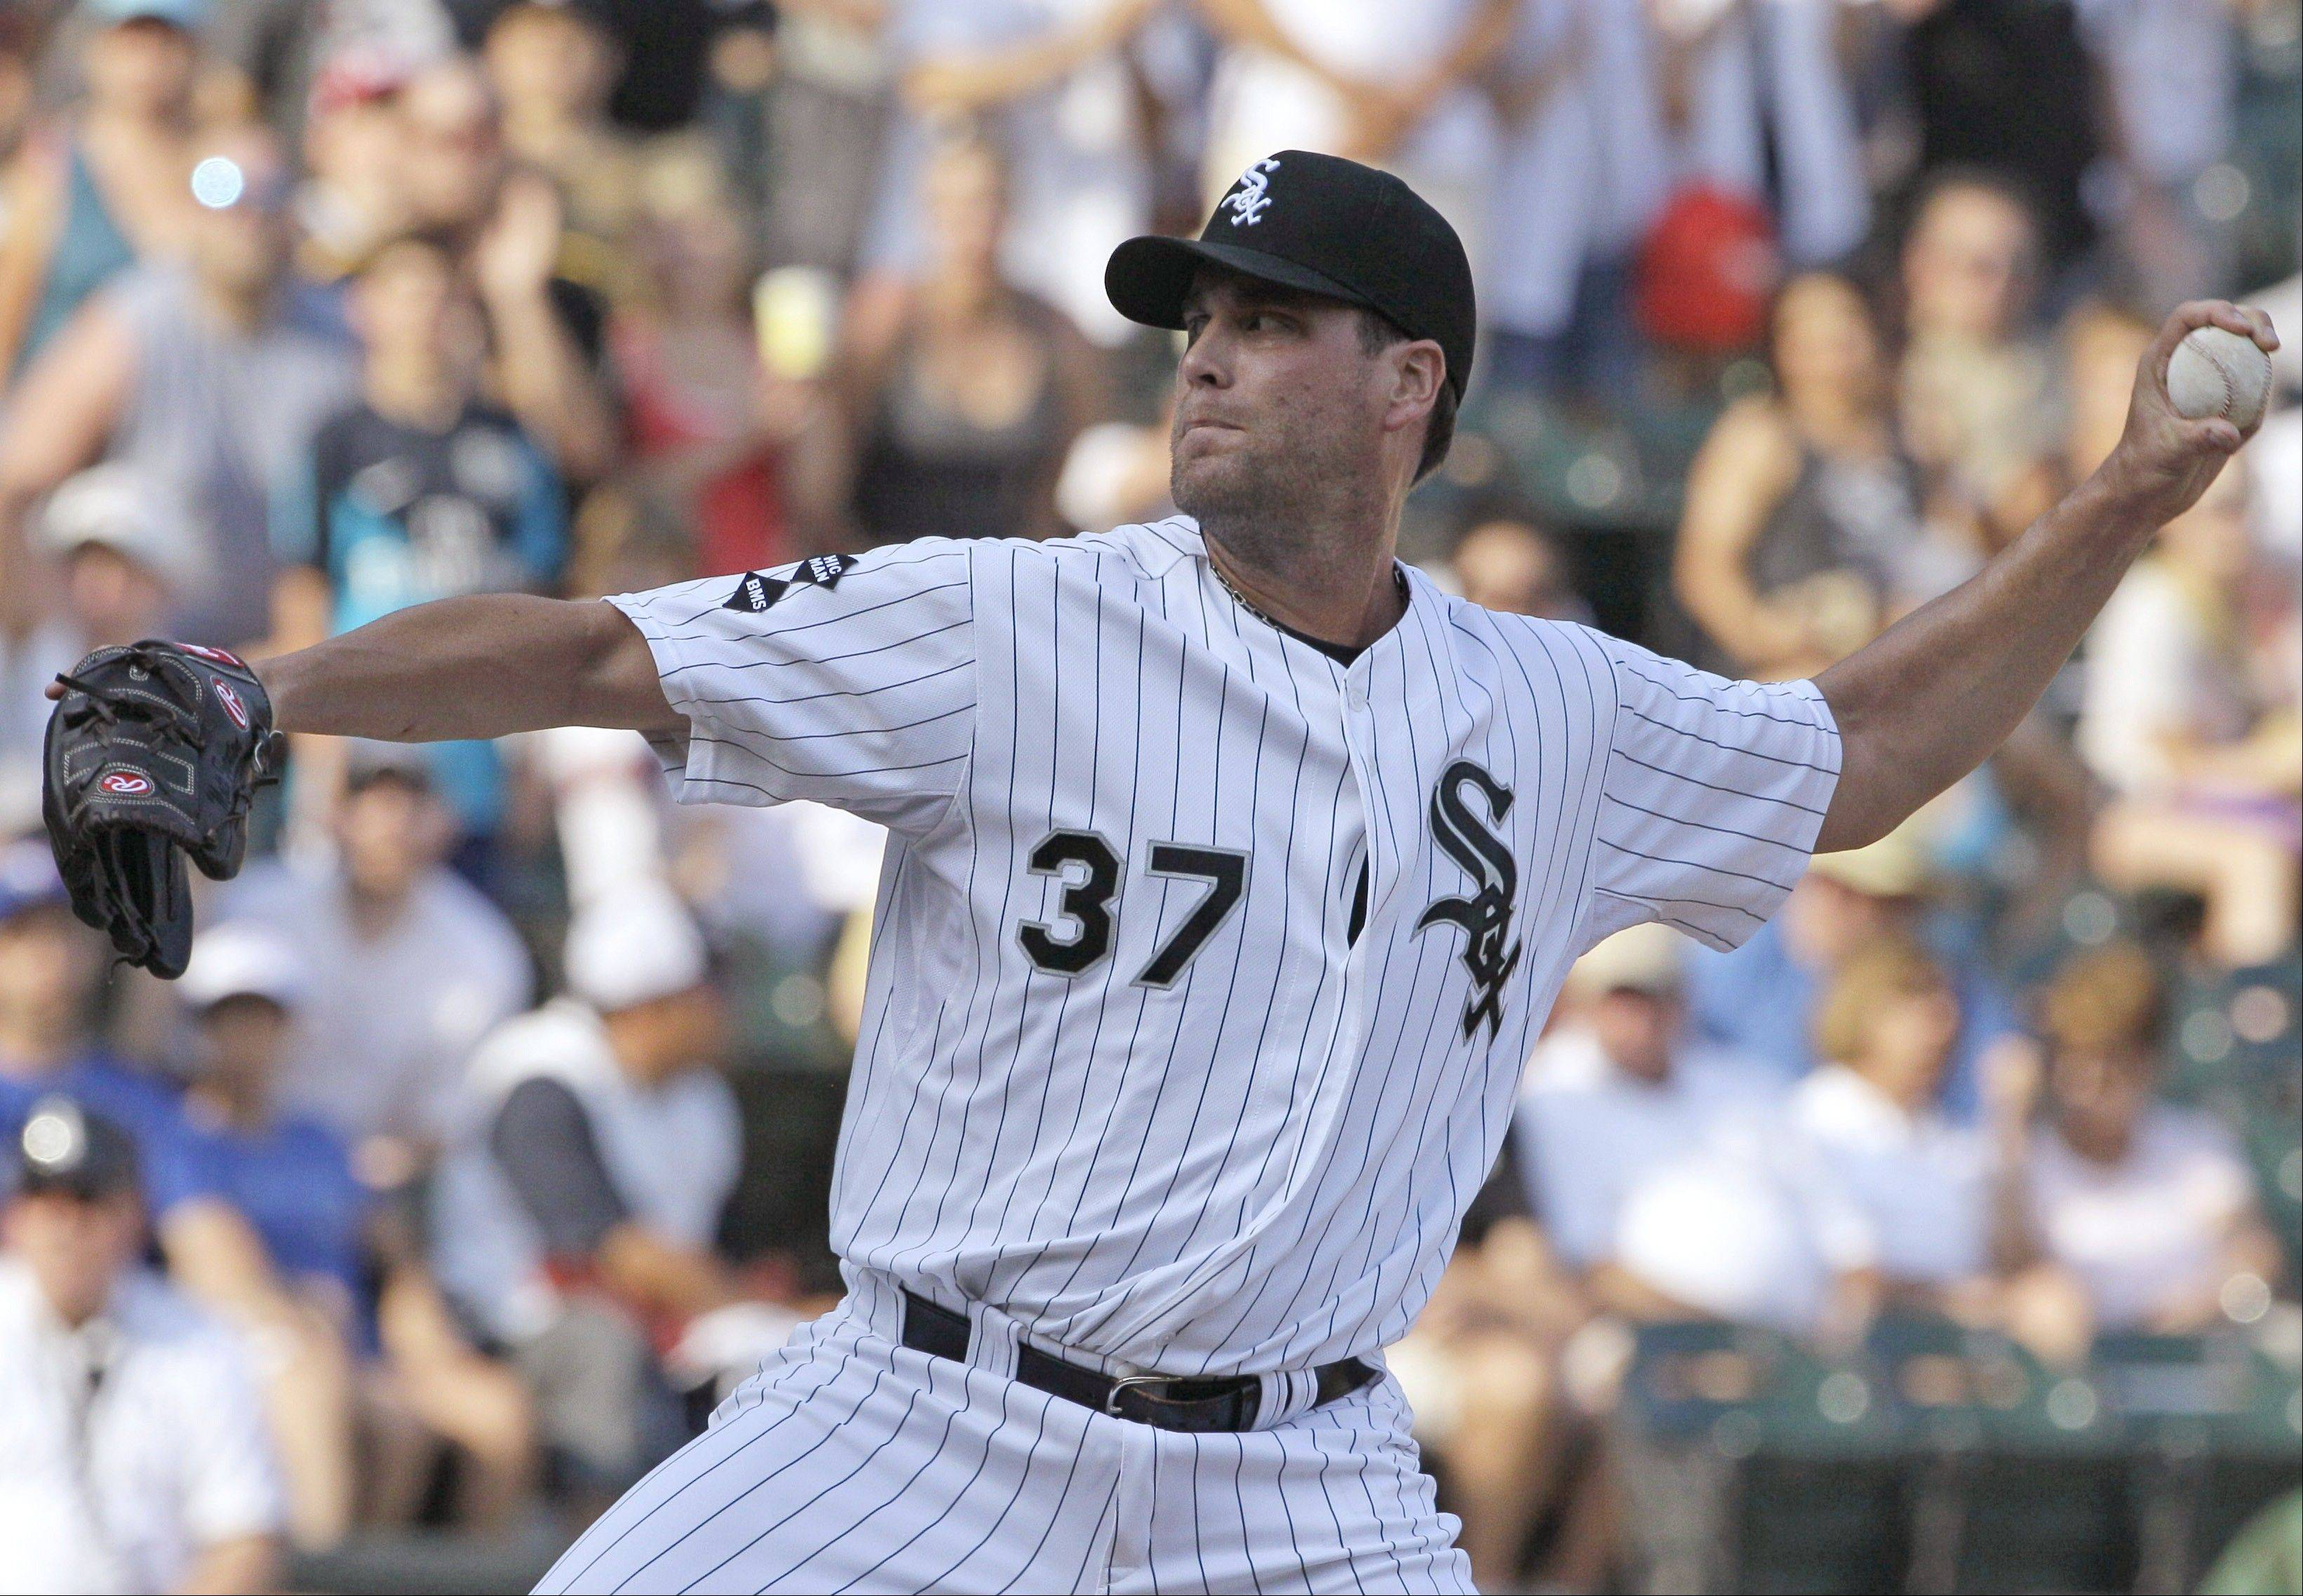 Matt Thornton was a solid relief pitcher for the White Sox, but it was time to trade him, according to Matt Spiegel.